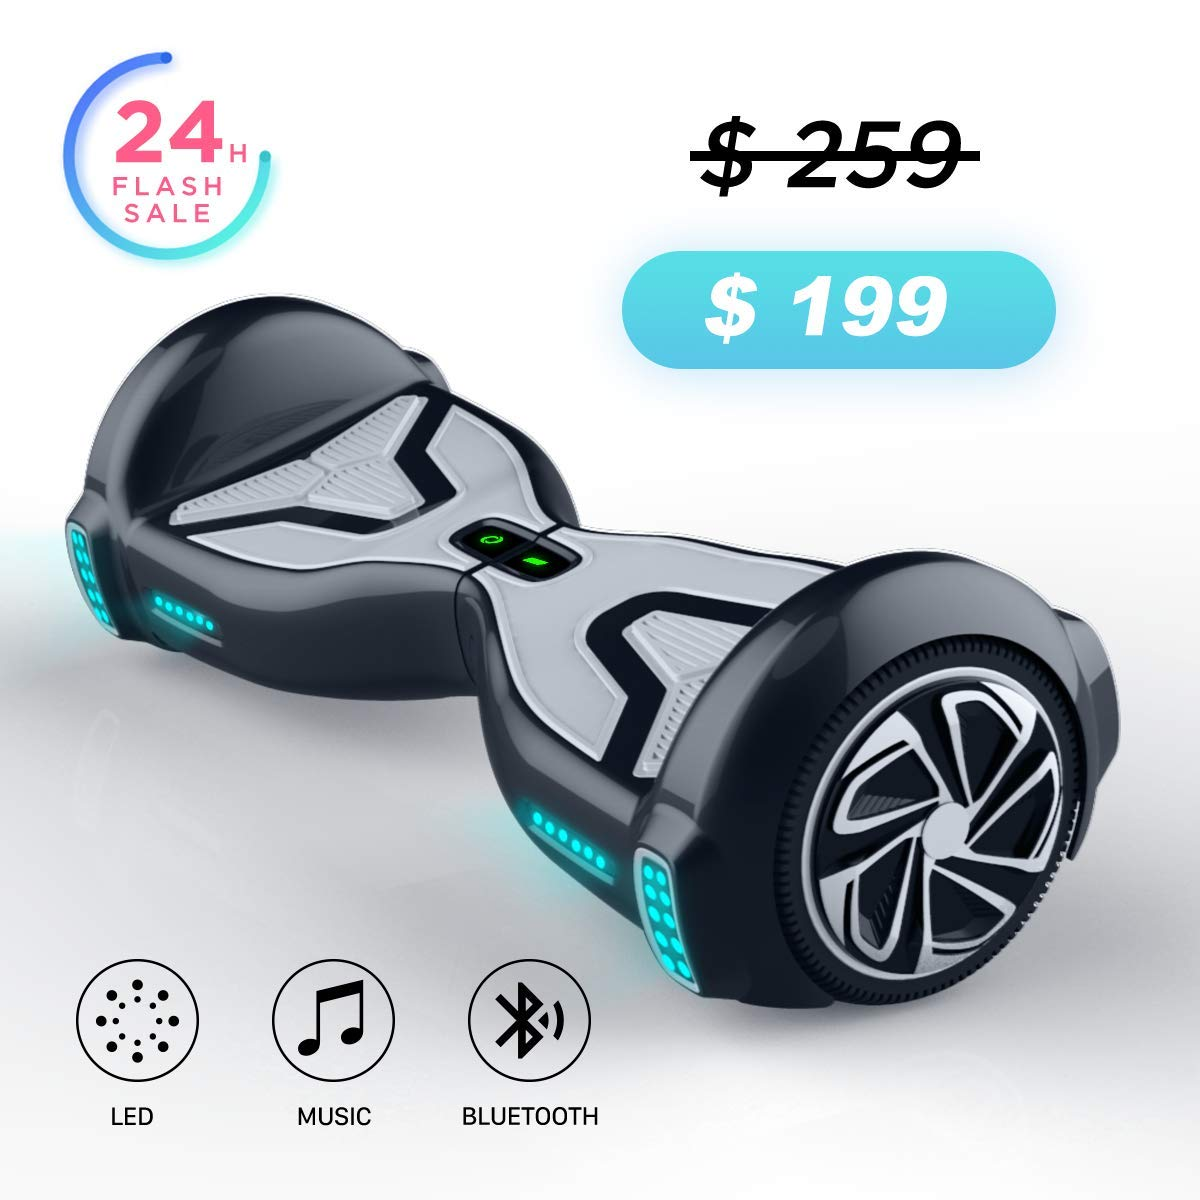 TOMOLOO Hover Boards for Kids, UL2272 Certified Hoverboard Adult with Bluetooth Speaker and LED Light, 6.5'' Two Wheels Self Balancing Hoverboard Electric Scooter